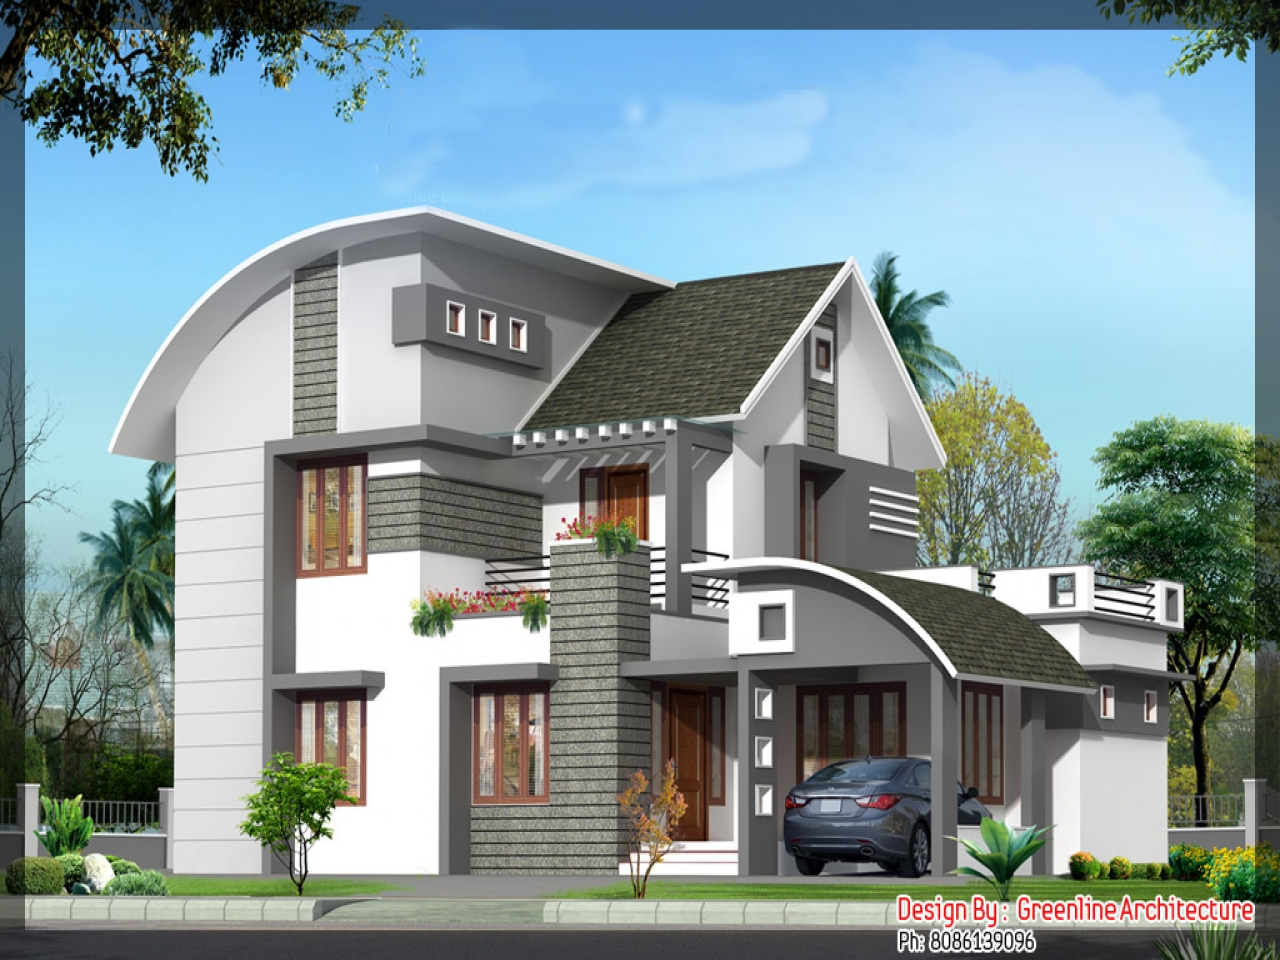 New design house plans newest home plans new house plans for New home designs in india